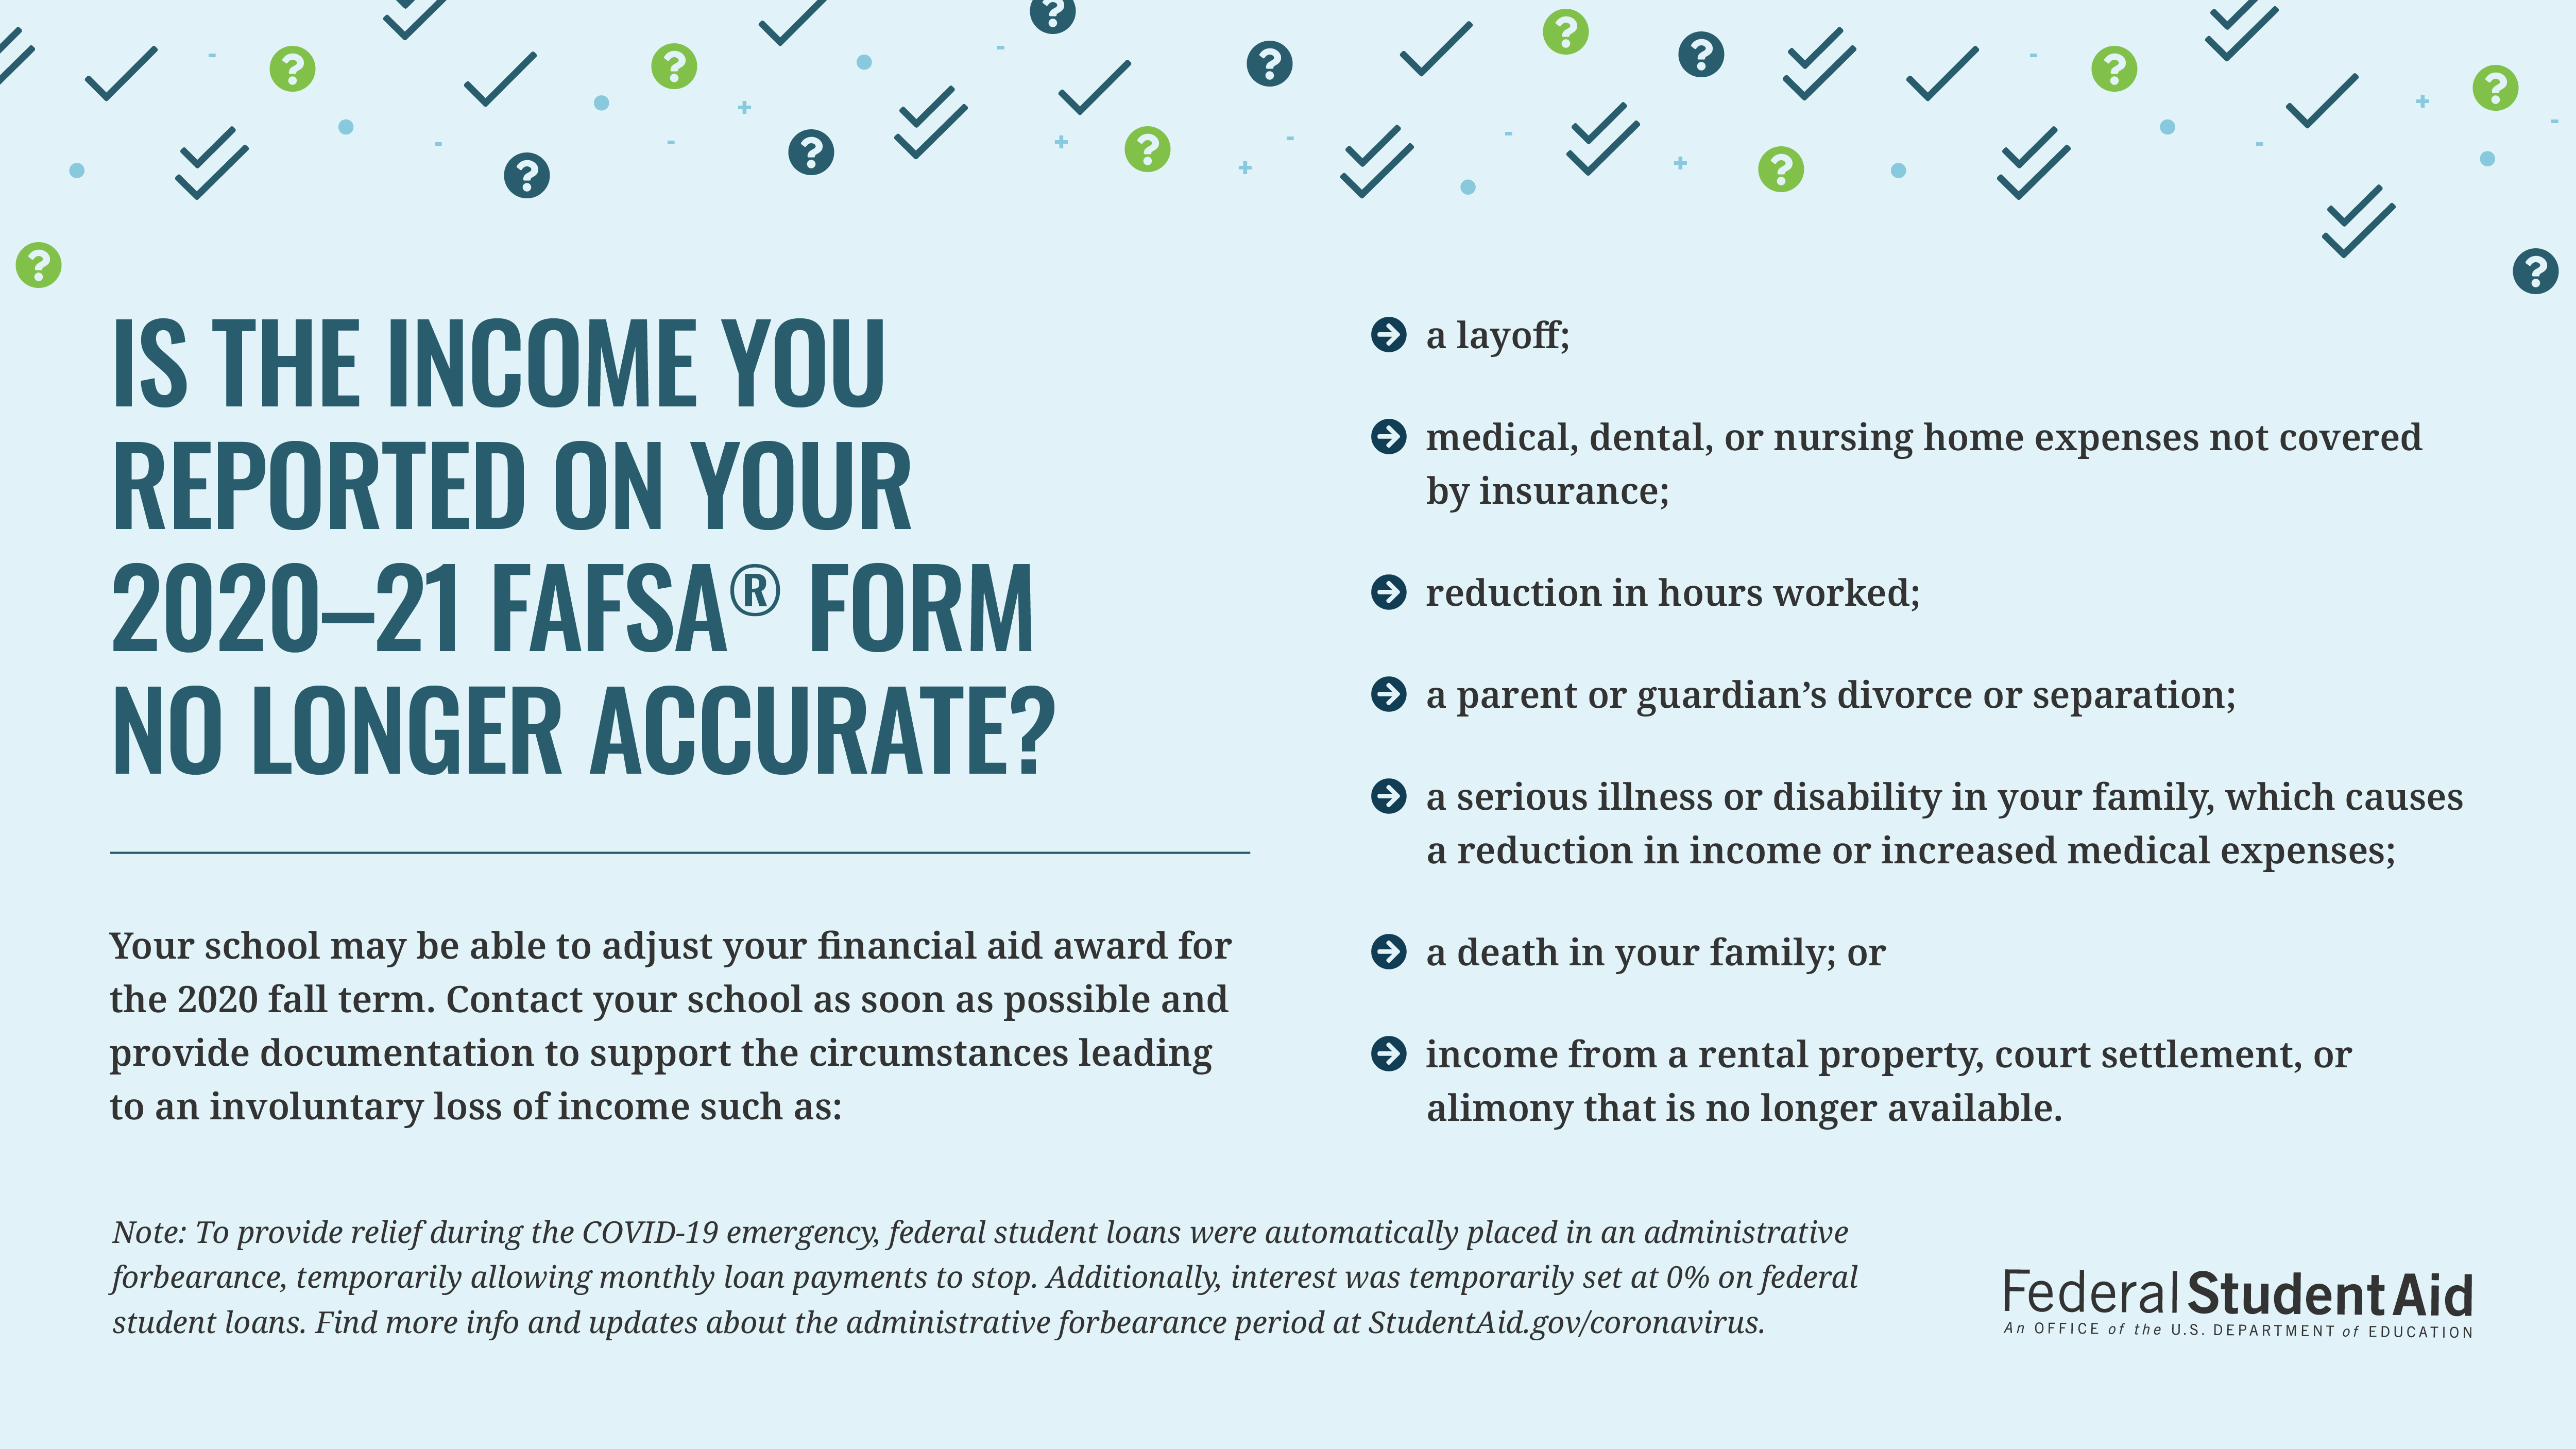 Is the income you reported on your 2020–21 FAFSA® form no longer accurate?  Your school may be able to adjust your financial aid award for the 2020 fall term. Contact your school as soon as possible and provide documentation to support the circumstances leading to an involuntary loss of income such as:   •	A layoff;  •	Incarceration;  •	Reduction in hours worked;  •	A parent or guardian's divorce or separation;  •	A serious illness or disability in your family which causes a reduction in income or increased medical expenses;  •	A death in your family; or   •	Income from a rental property, court settlement, or alimony that is no longer available. Note: To provide relief during the COVID-19 emergency, federal student loans were automatically placed in an administrative forbearance, temporarily allowing monthly loan payments to stop. Additionally, interest was temporarily set at 0% on Federal student loans. Find more info and updates about the administrative forbearance period at StudentAid.gov/coronavirus.